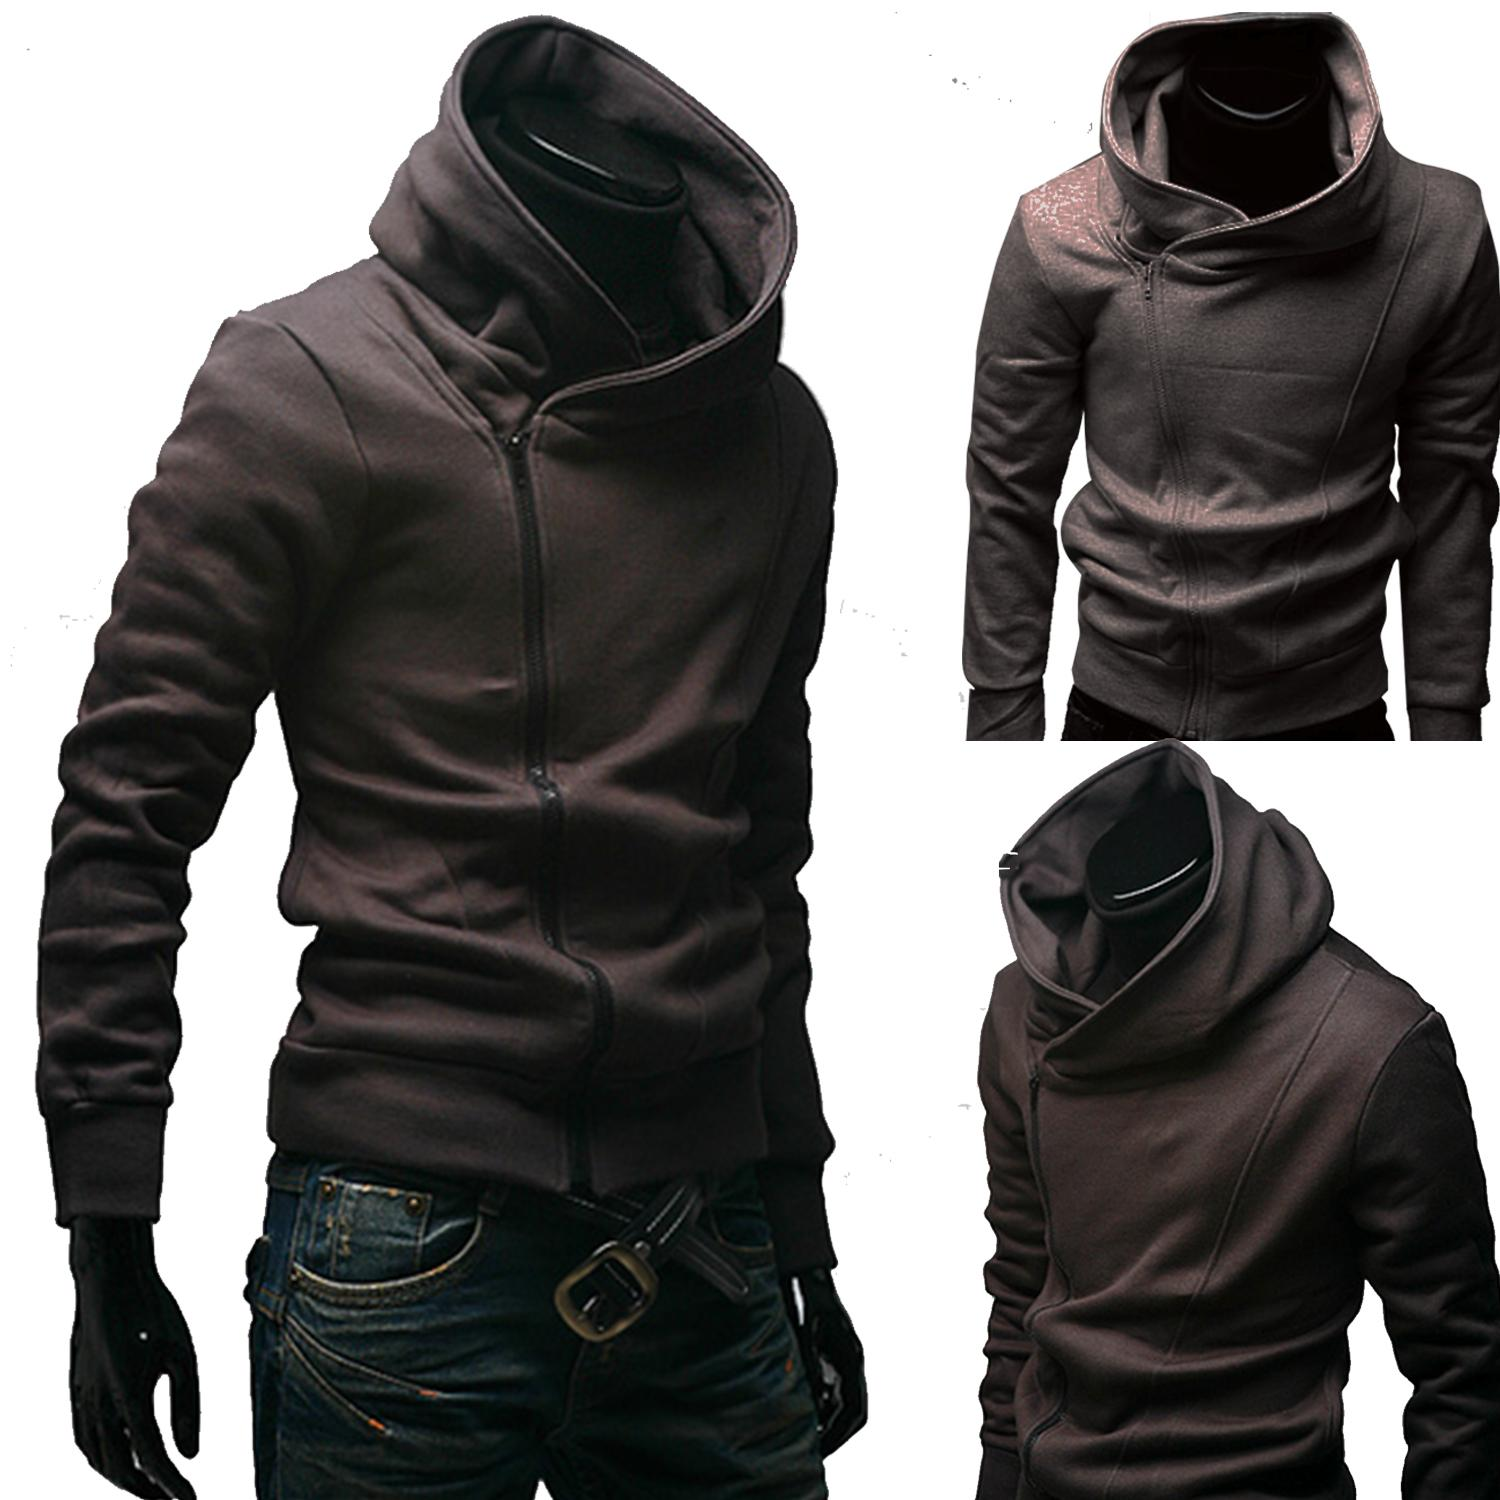 bede19cf1381 Slim Fit Hooded Jacket Slim Fit Zipped Jacket Zip Hooded Jacket Men Zipped  Jacket Zip Up